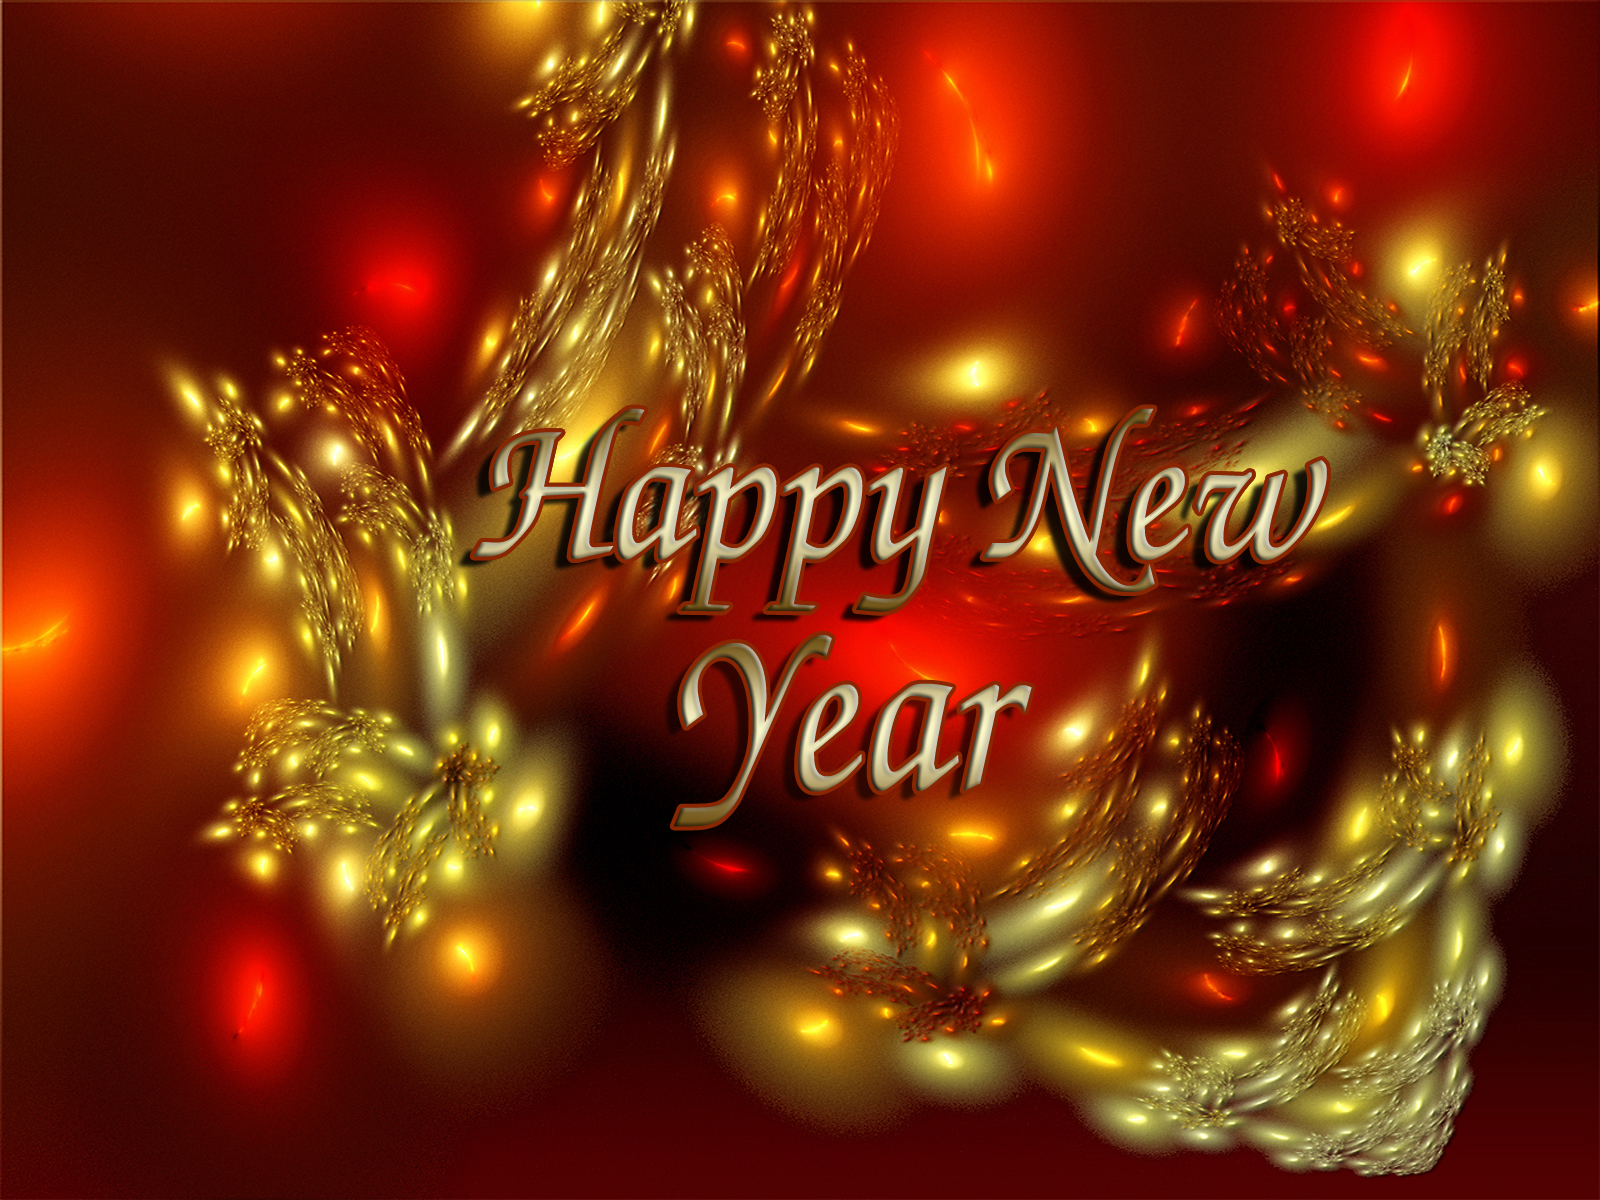 http://1.bp.blogspot.com/-ufkp6yKrPAI/ThhNKBmdm1I/AAAAAAAAA8M/Fmz9dj-MKaw/s1600/happy-new-year-wallpaper-8.jpg